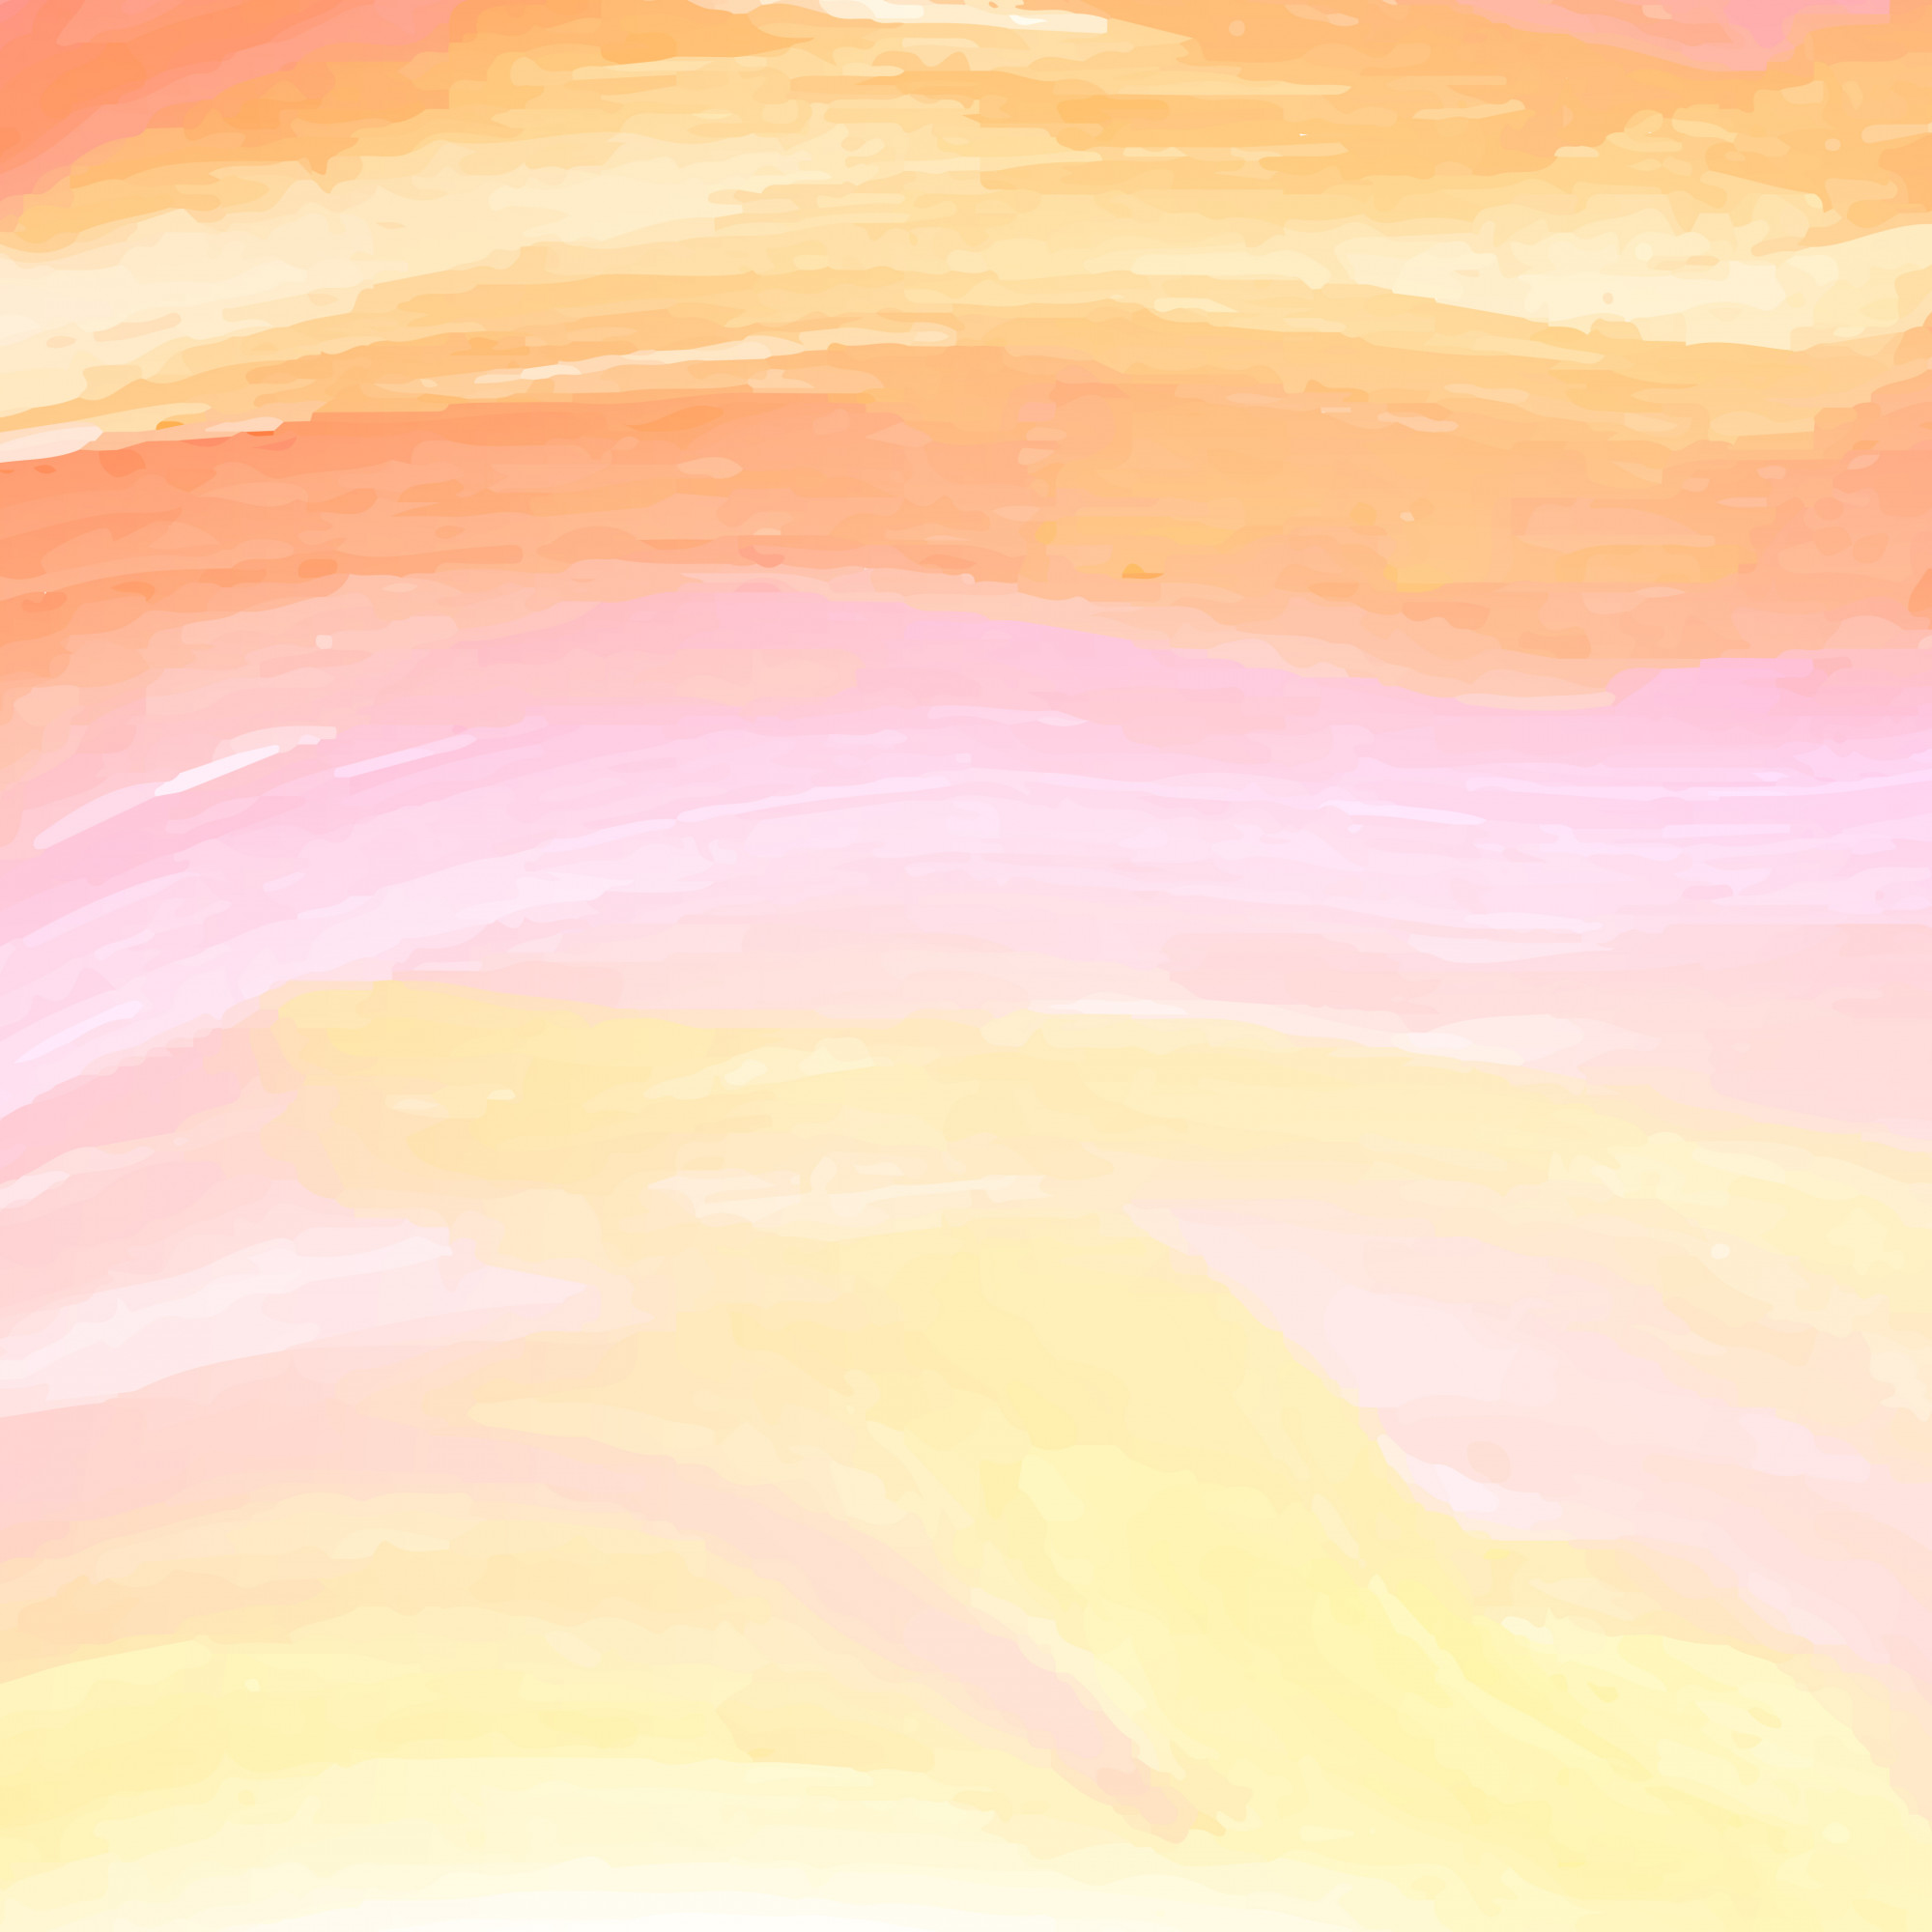 Abstract watercolor modern vector background